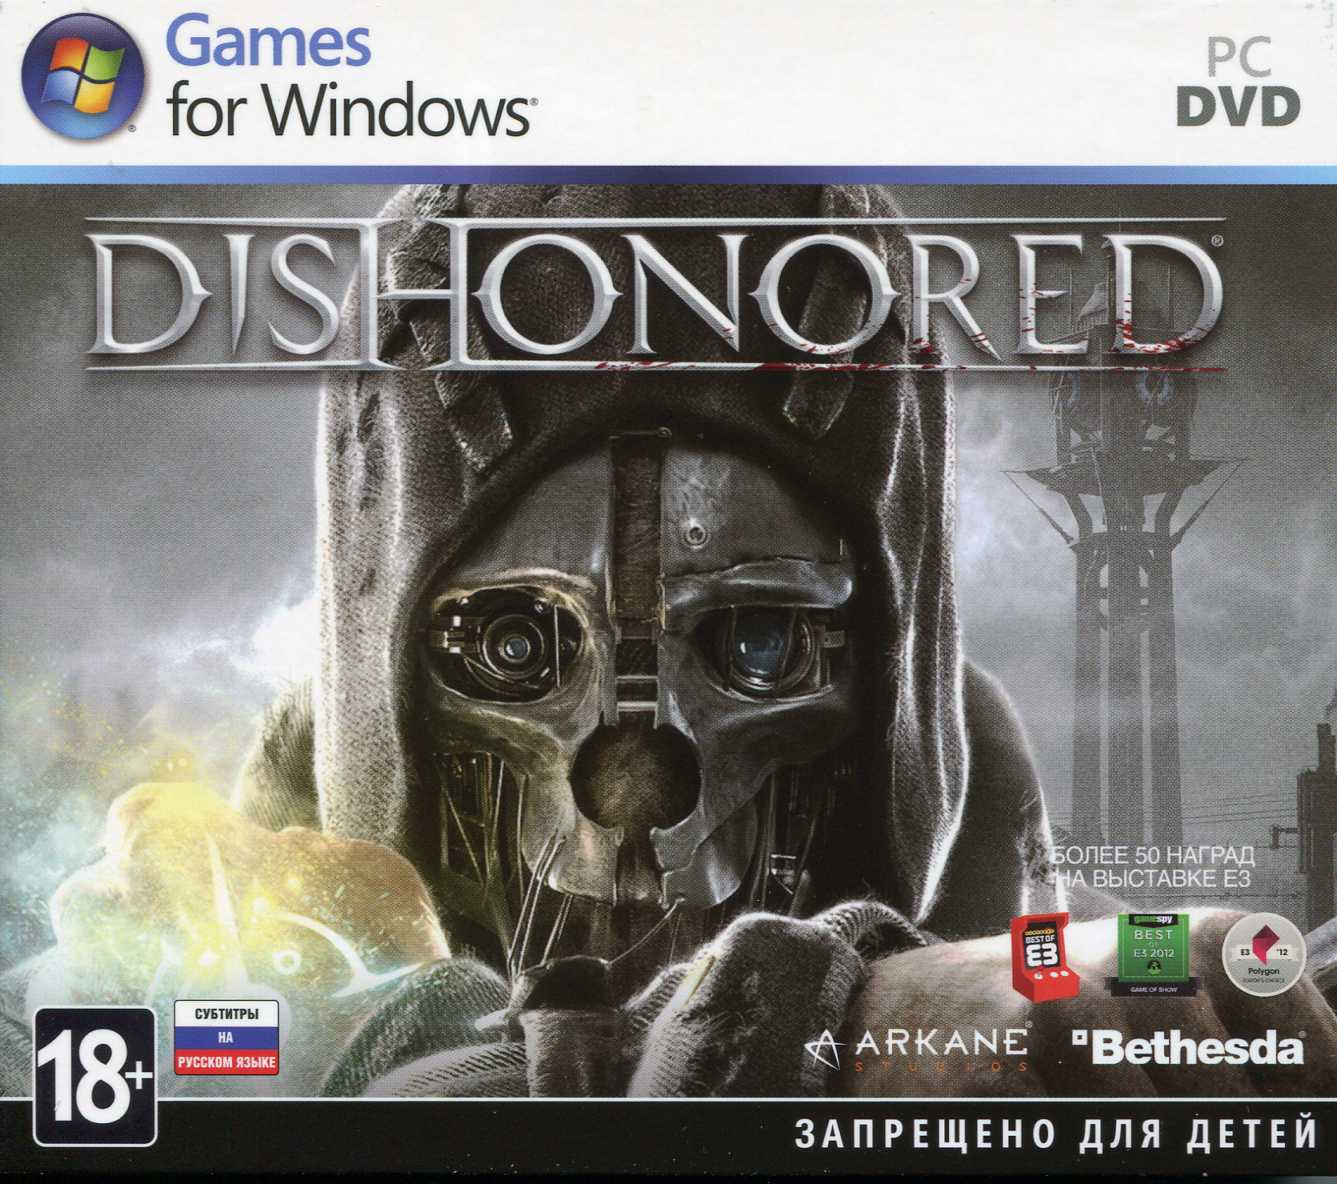 Dishonored (activation key in Steam)